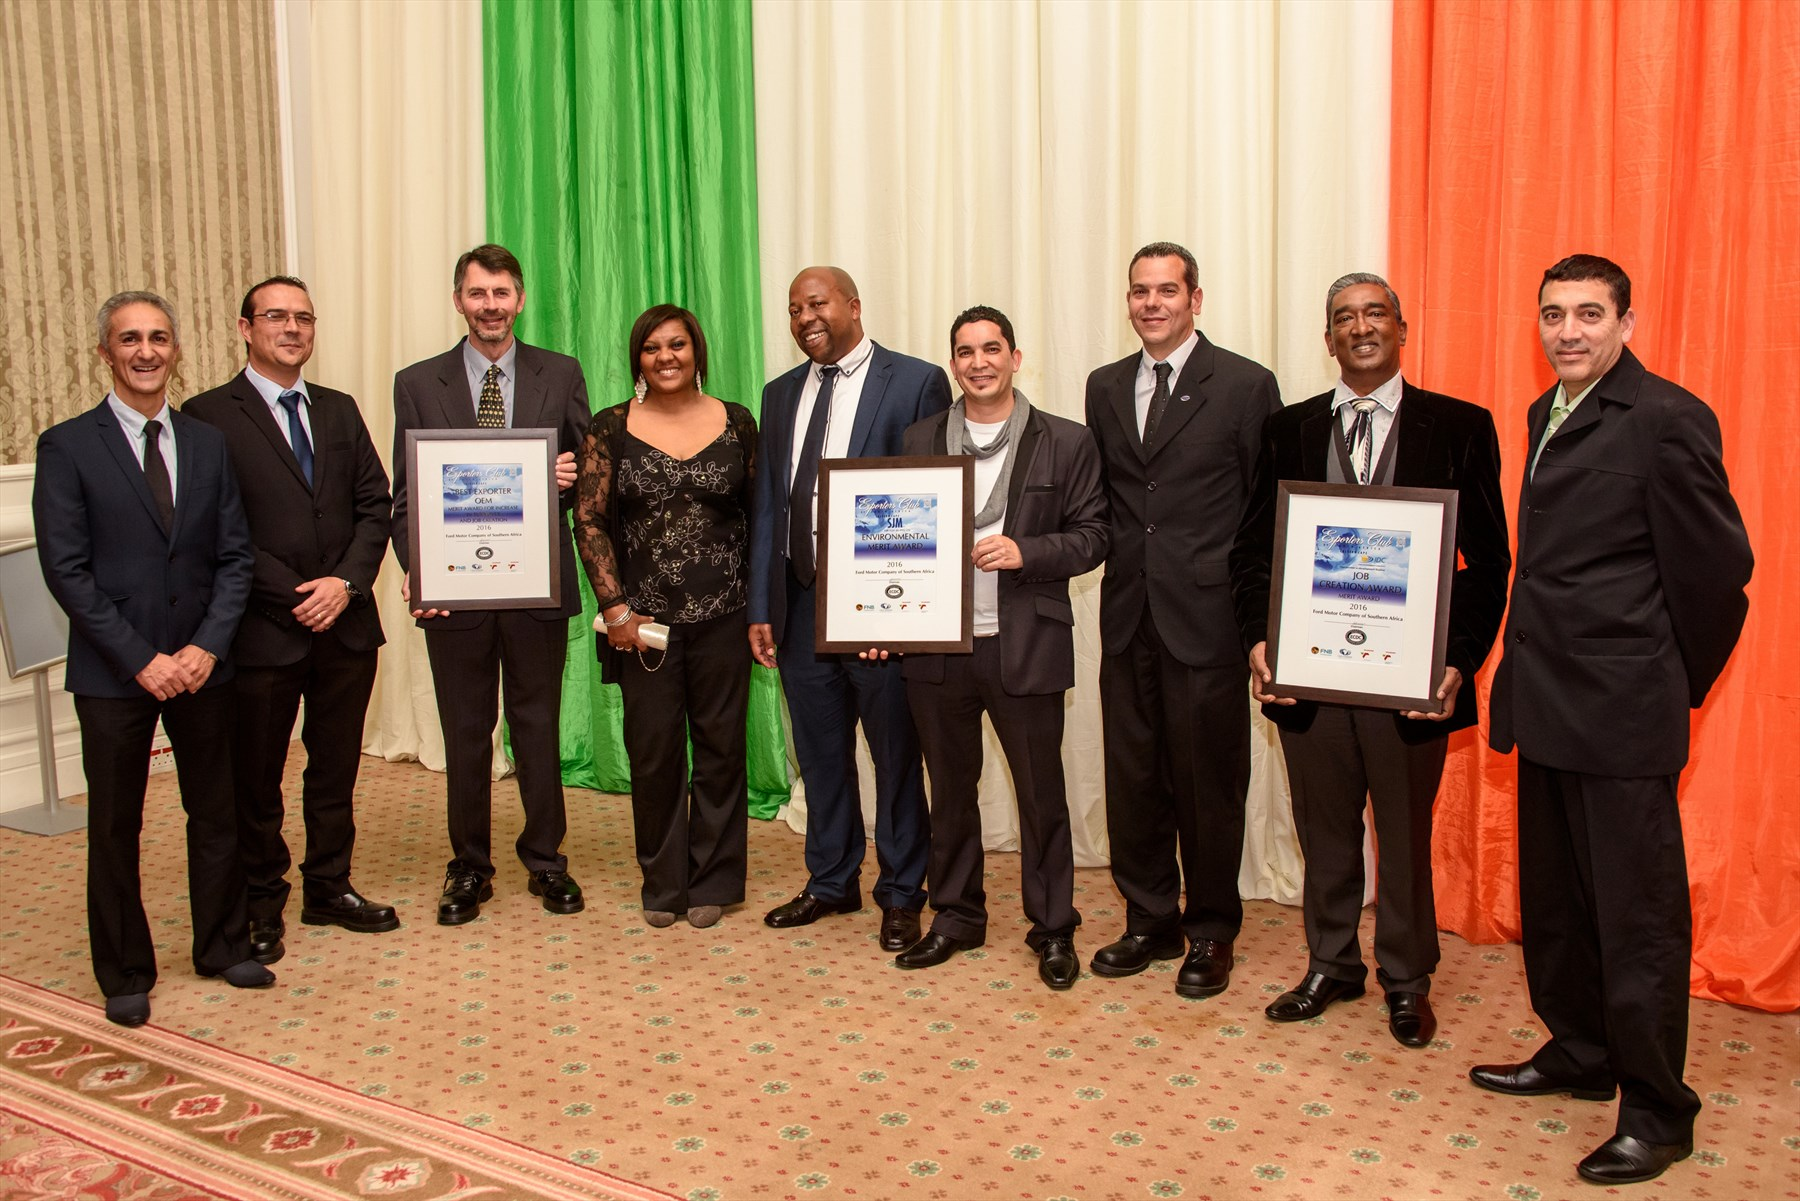 Members of the Ford Struandale Engine Plant team with the three Merit Awards received at the 2016 Exporter of the Year awards, held by the Exporters Club of South Africa – Eastern Cape. From left: Hyron Muniz (Production Manager), Shawn Sharp (Plant Engineering and Maintenance Manager), Julien Verstraeten (Resident Engineer), Fiona Kemp (Financial Analyst), Thabo Masete (HR Manager), Renaldo Meyers (Quality Manager), Neil Stander (Programs and Engineering Manager), Basil Raman (Operations Manager), Paul Brooks (Powertrain Operations Controller)